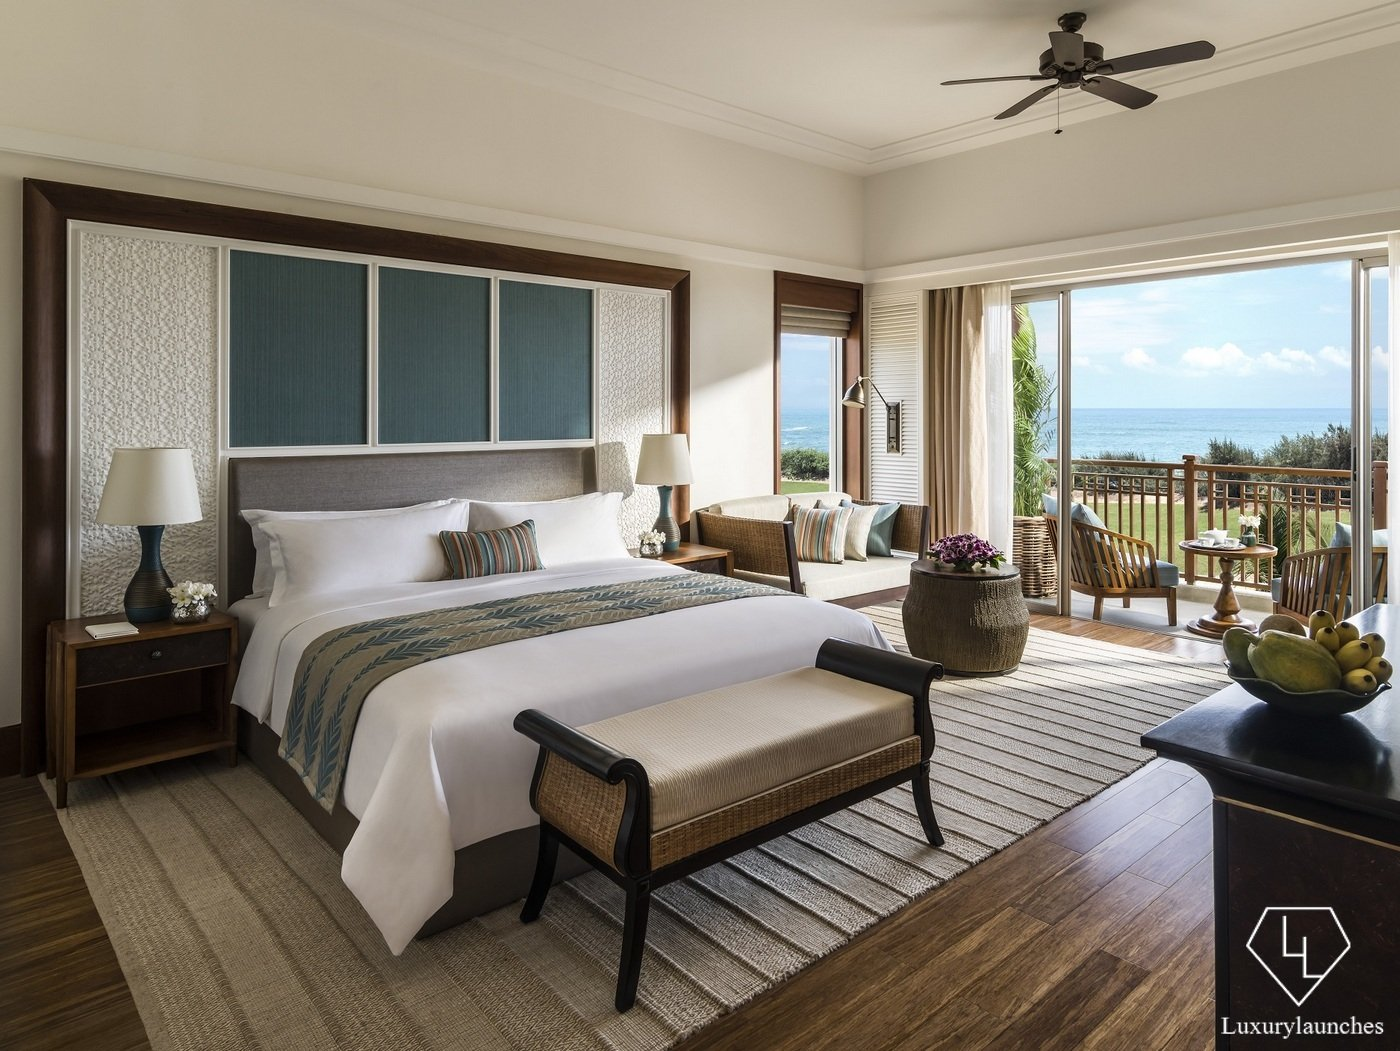 Suite Of The Week The Magnificent Premier Ocean Suite At The Shangri La 39 S Hambantota Golf